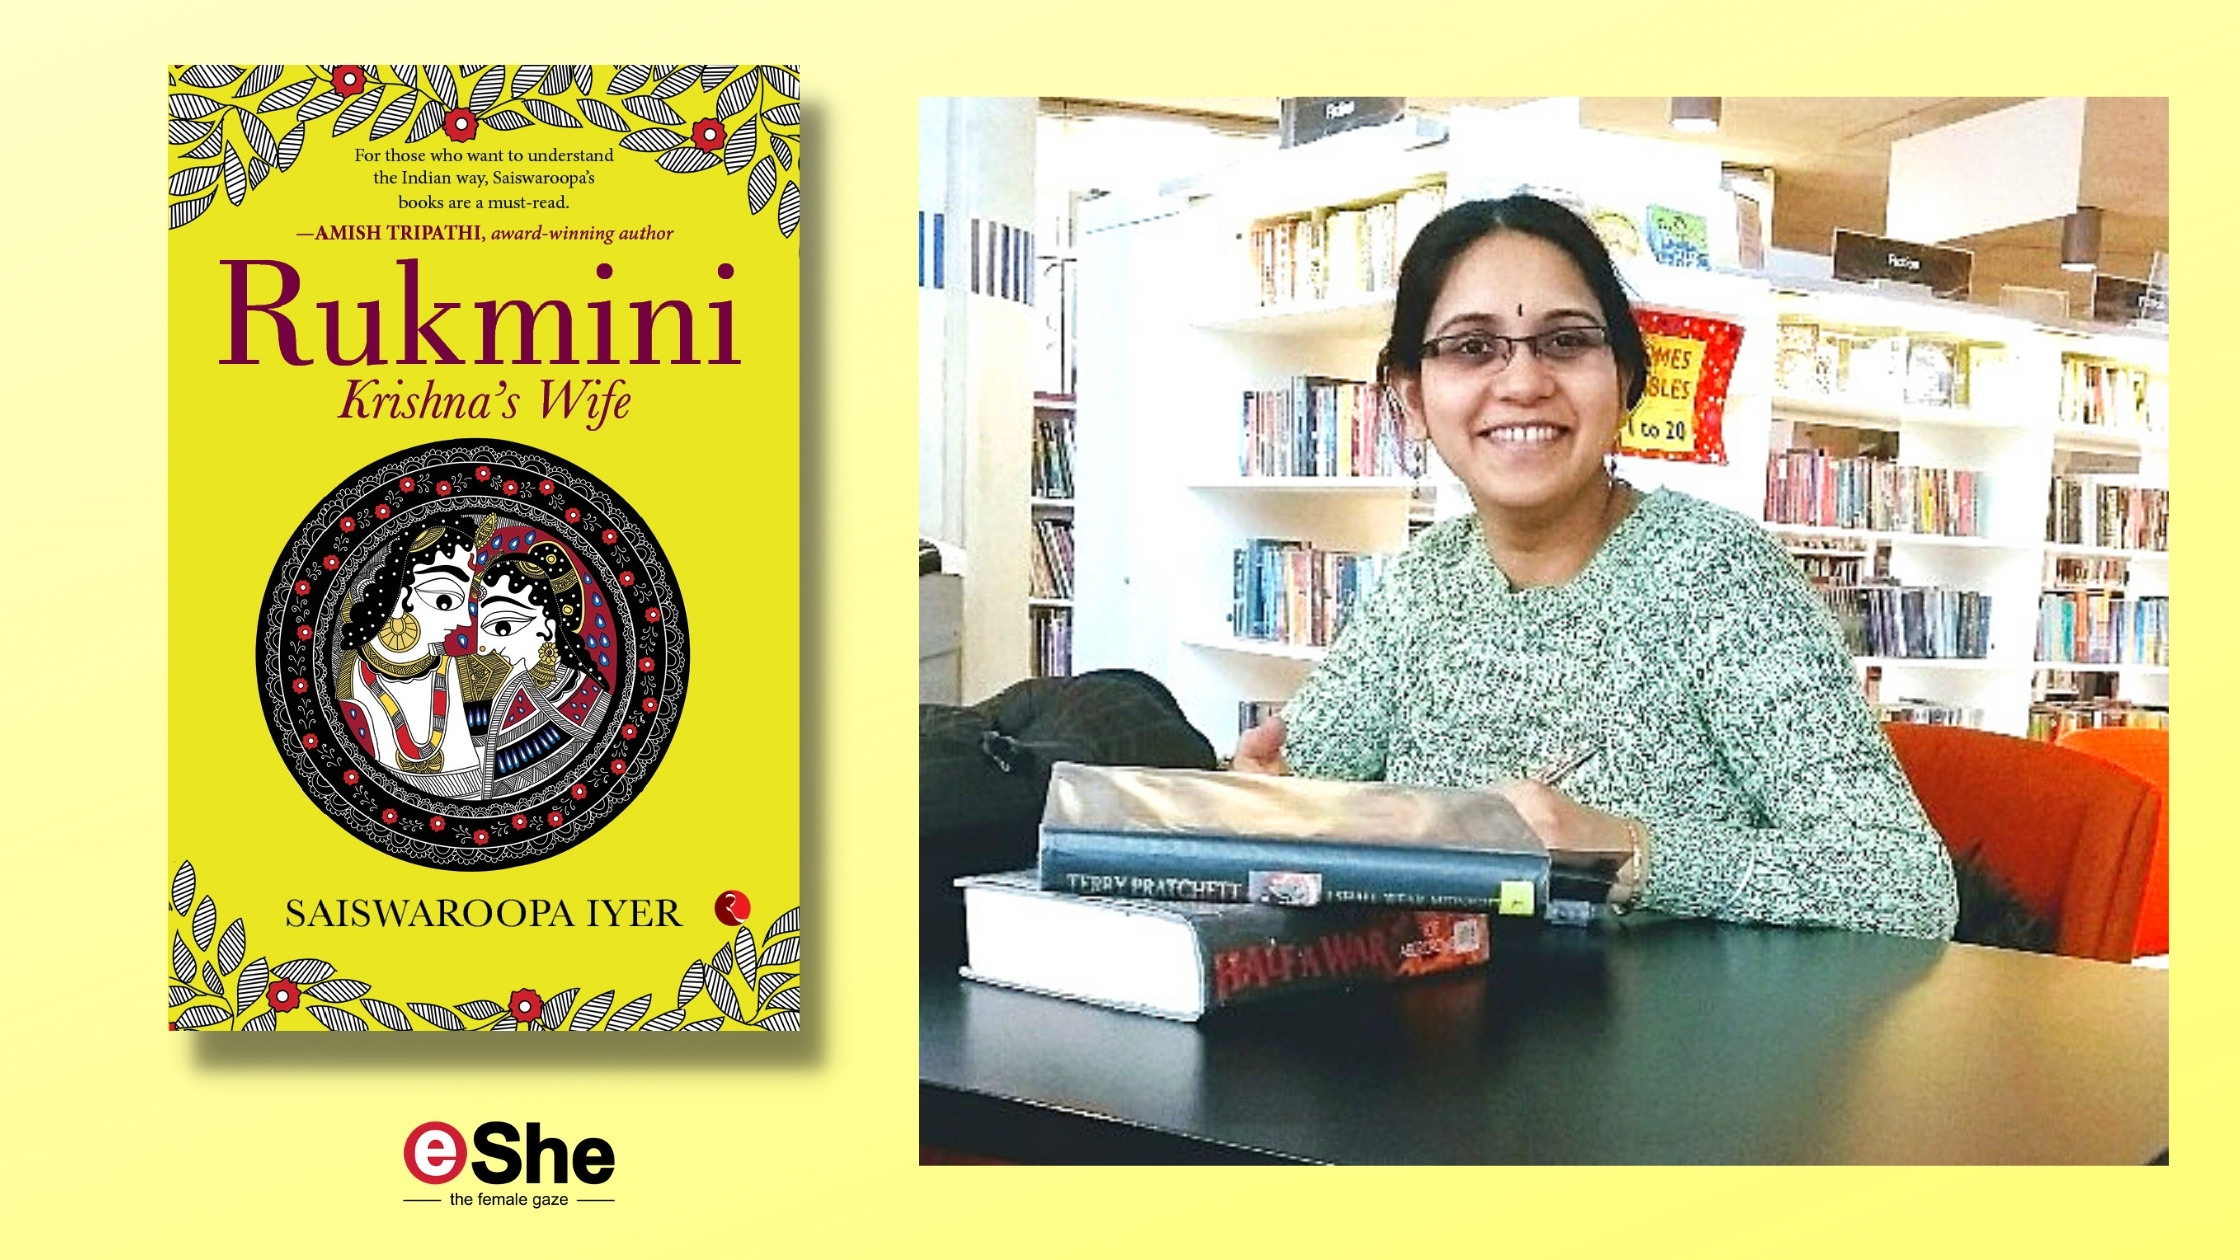 A God's Feisty Bride Who Held the Fort: New Novel on Rukmini Revisits a Historical Heroine